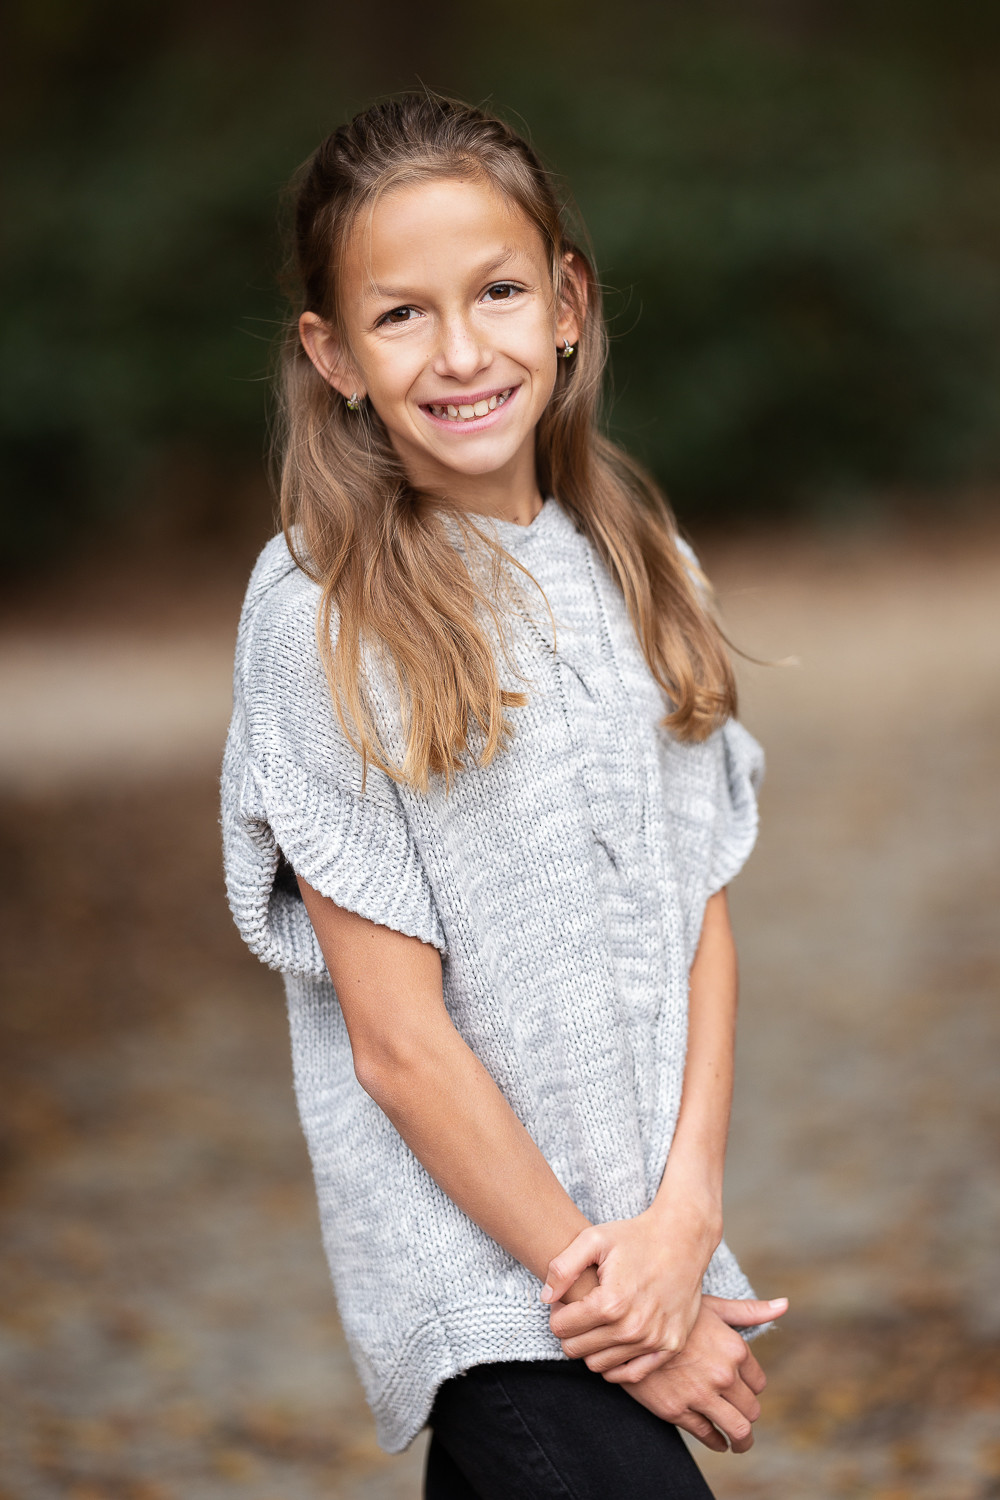 Pinehurst Family photographer, Makana Photography, professional photographer, fall pictures, family photos, Southner Pines, Aberdeen, Sanford, NC photographer